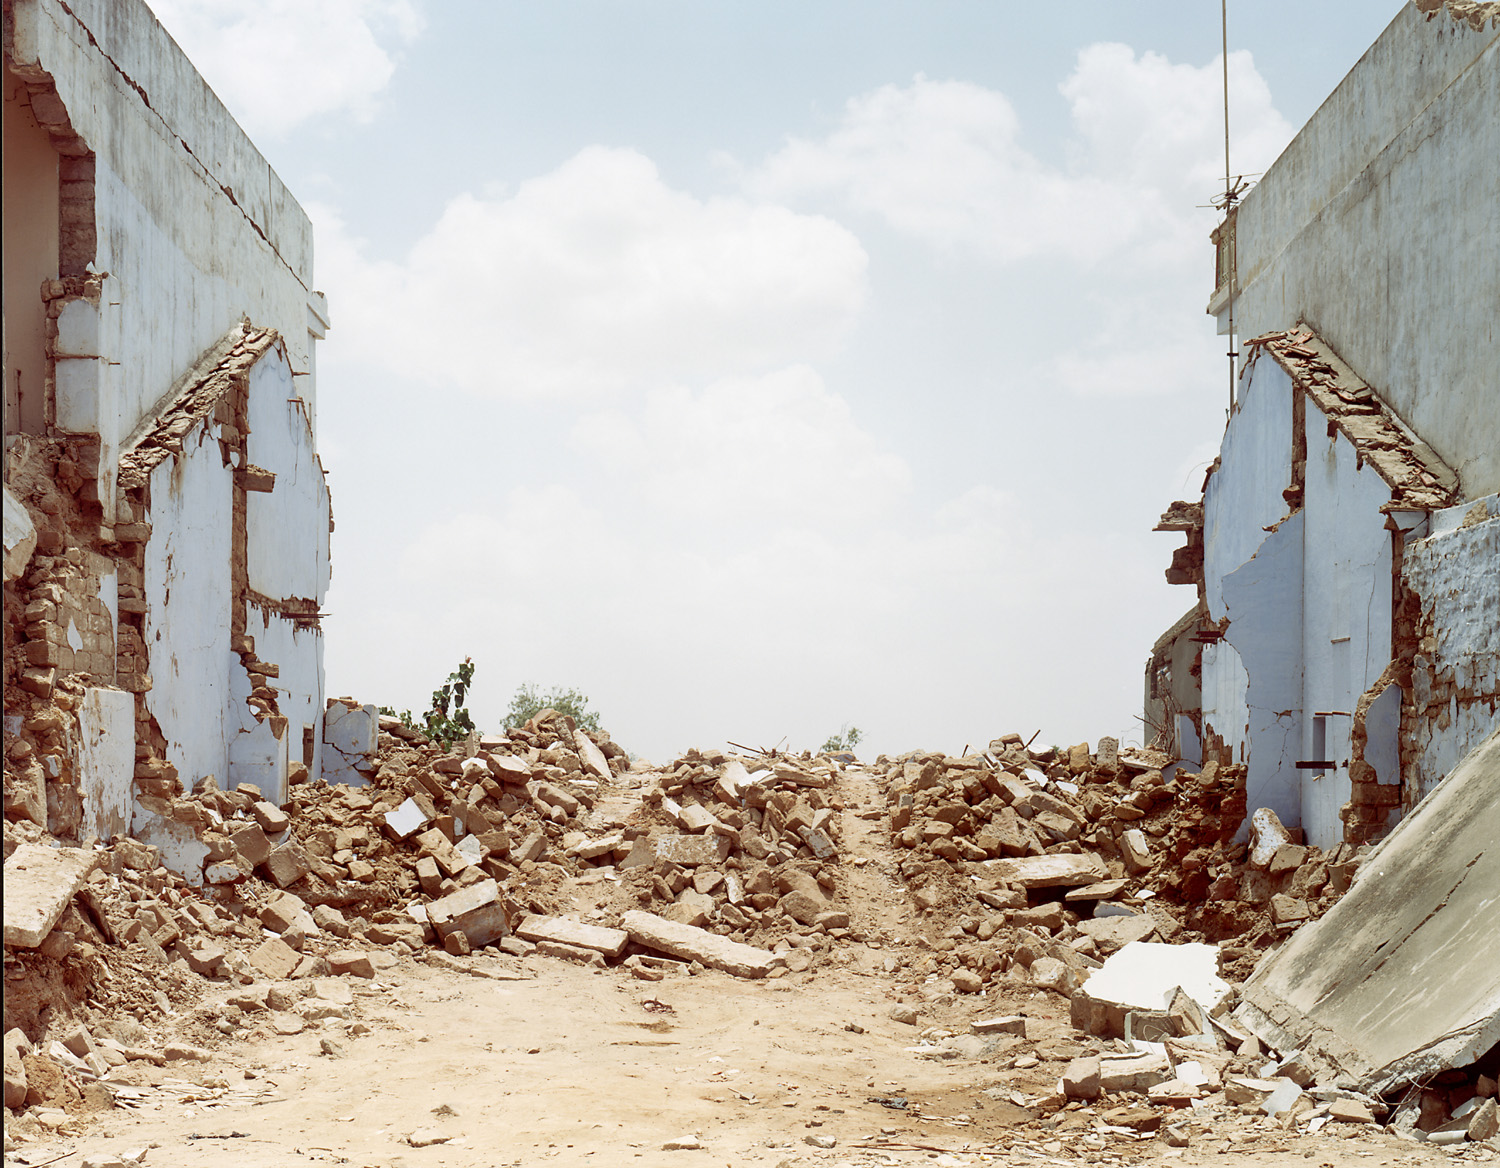 Sasha Bezzubov, Earthquake #3 India, 2001